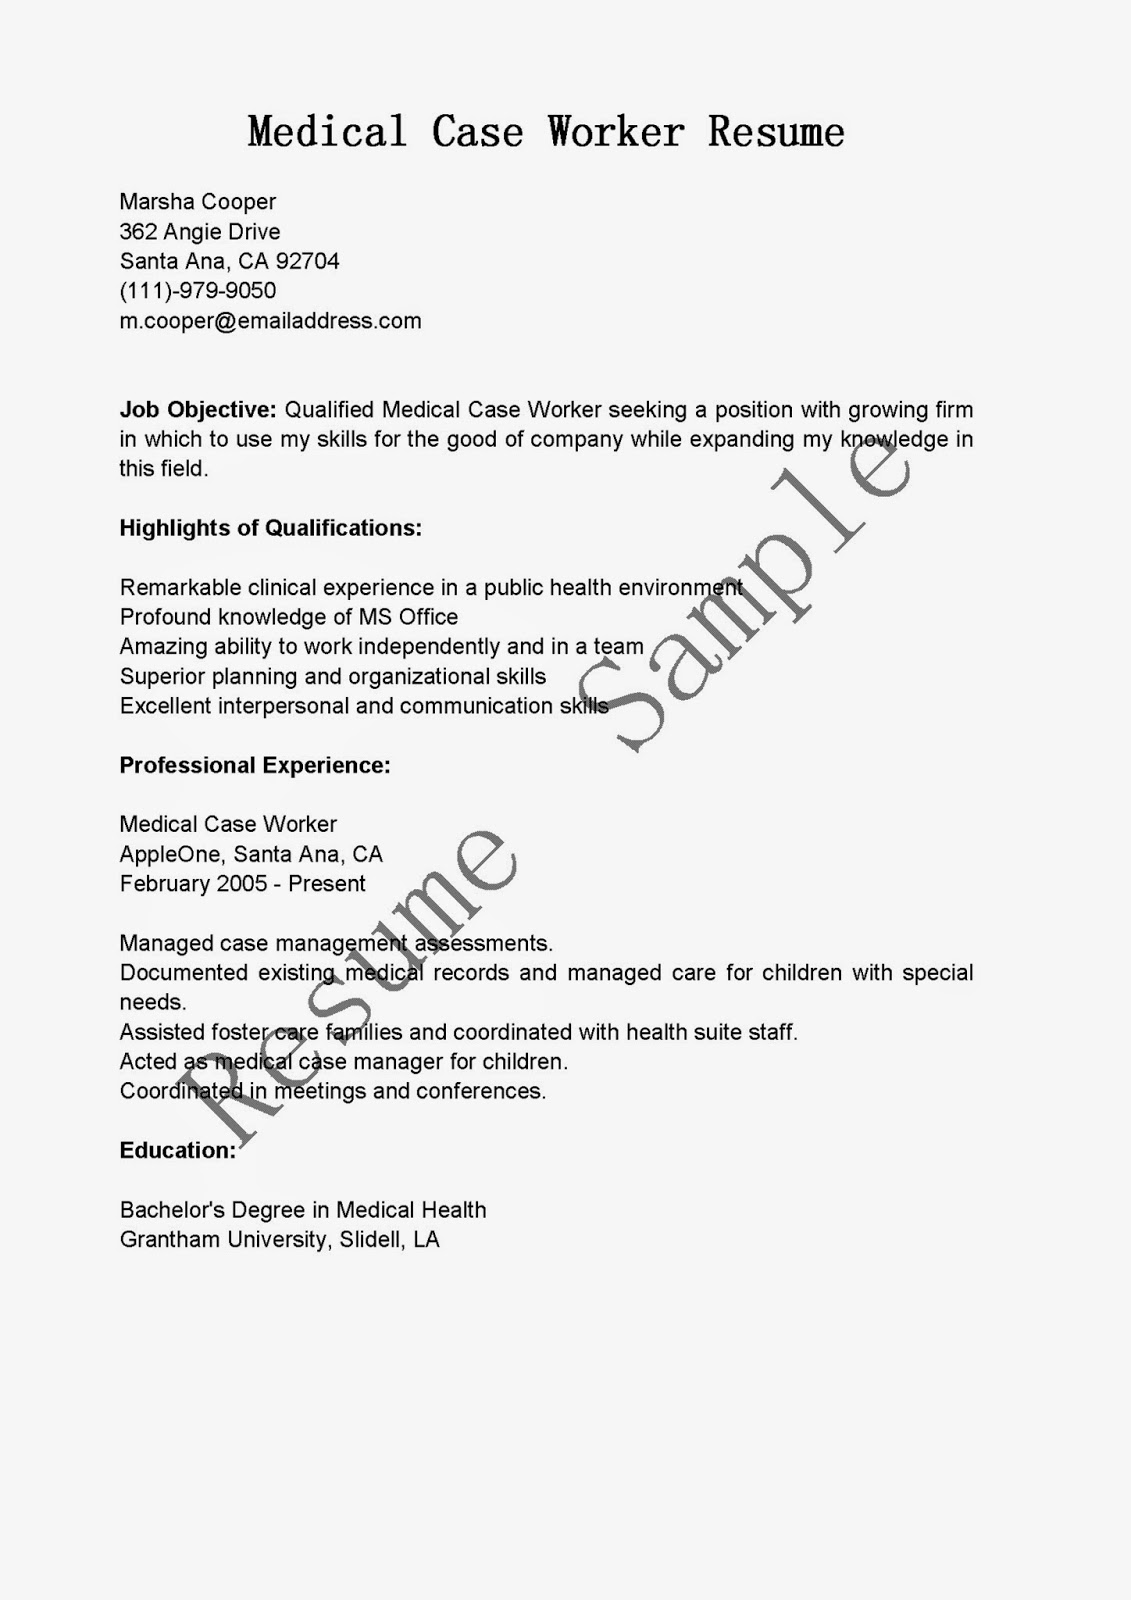 resume samples  medical case worker resume sample